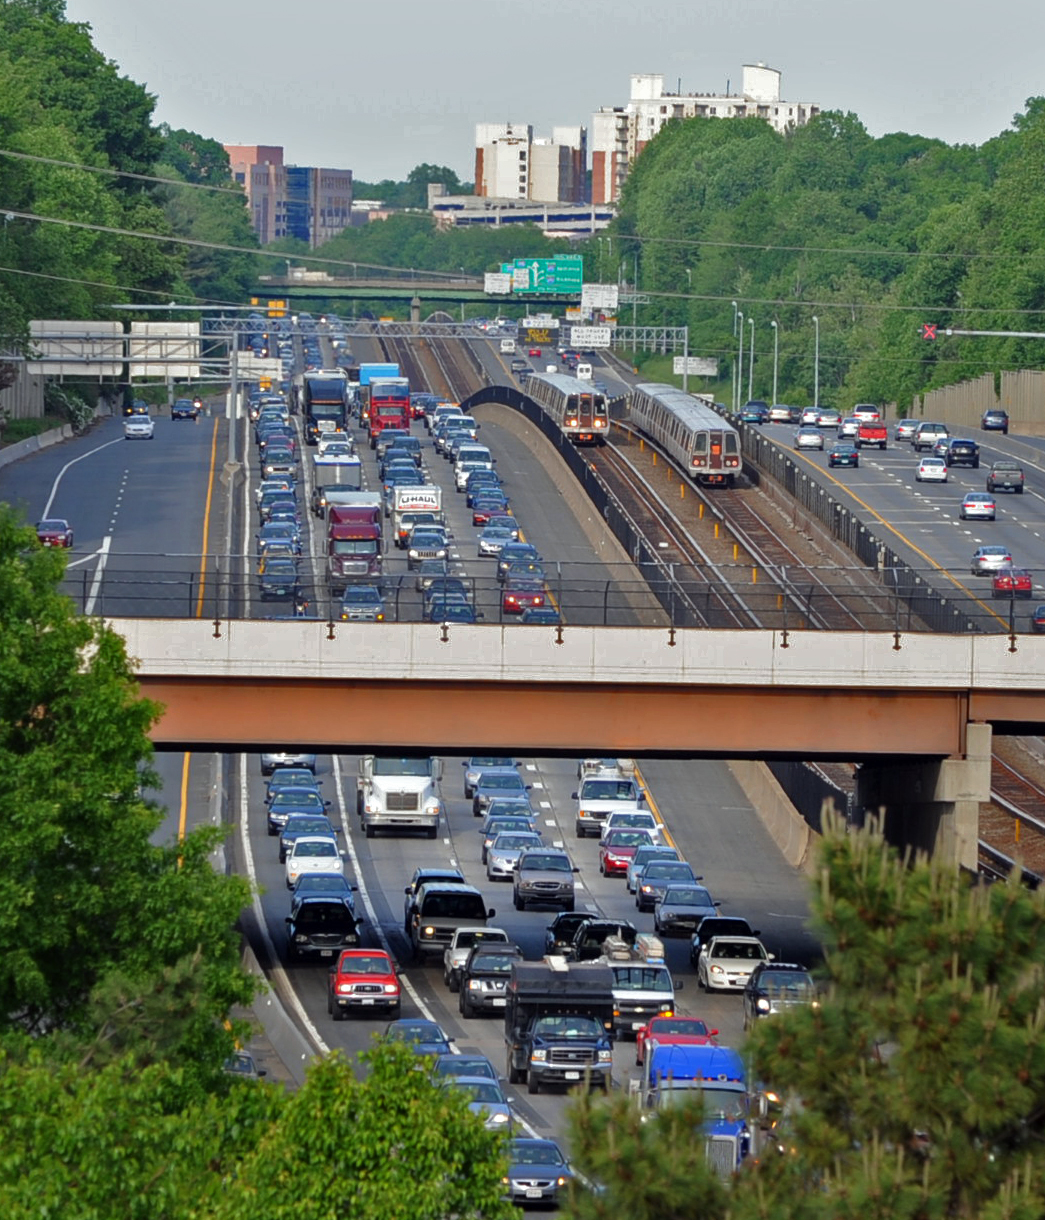 Metro trains move to and from the Vienna Metro Station alongside I-66 traffic in Fairfax, VA. on May 18, 2009.